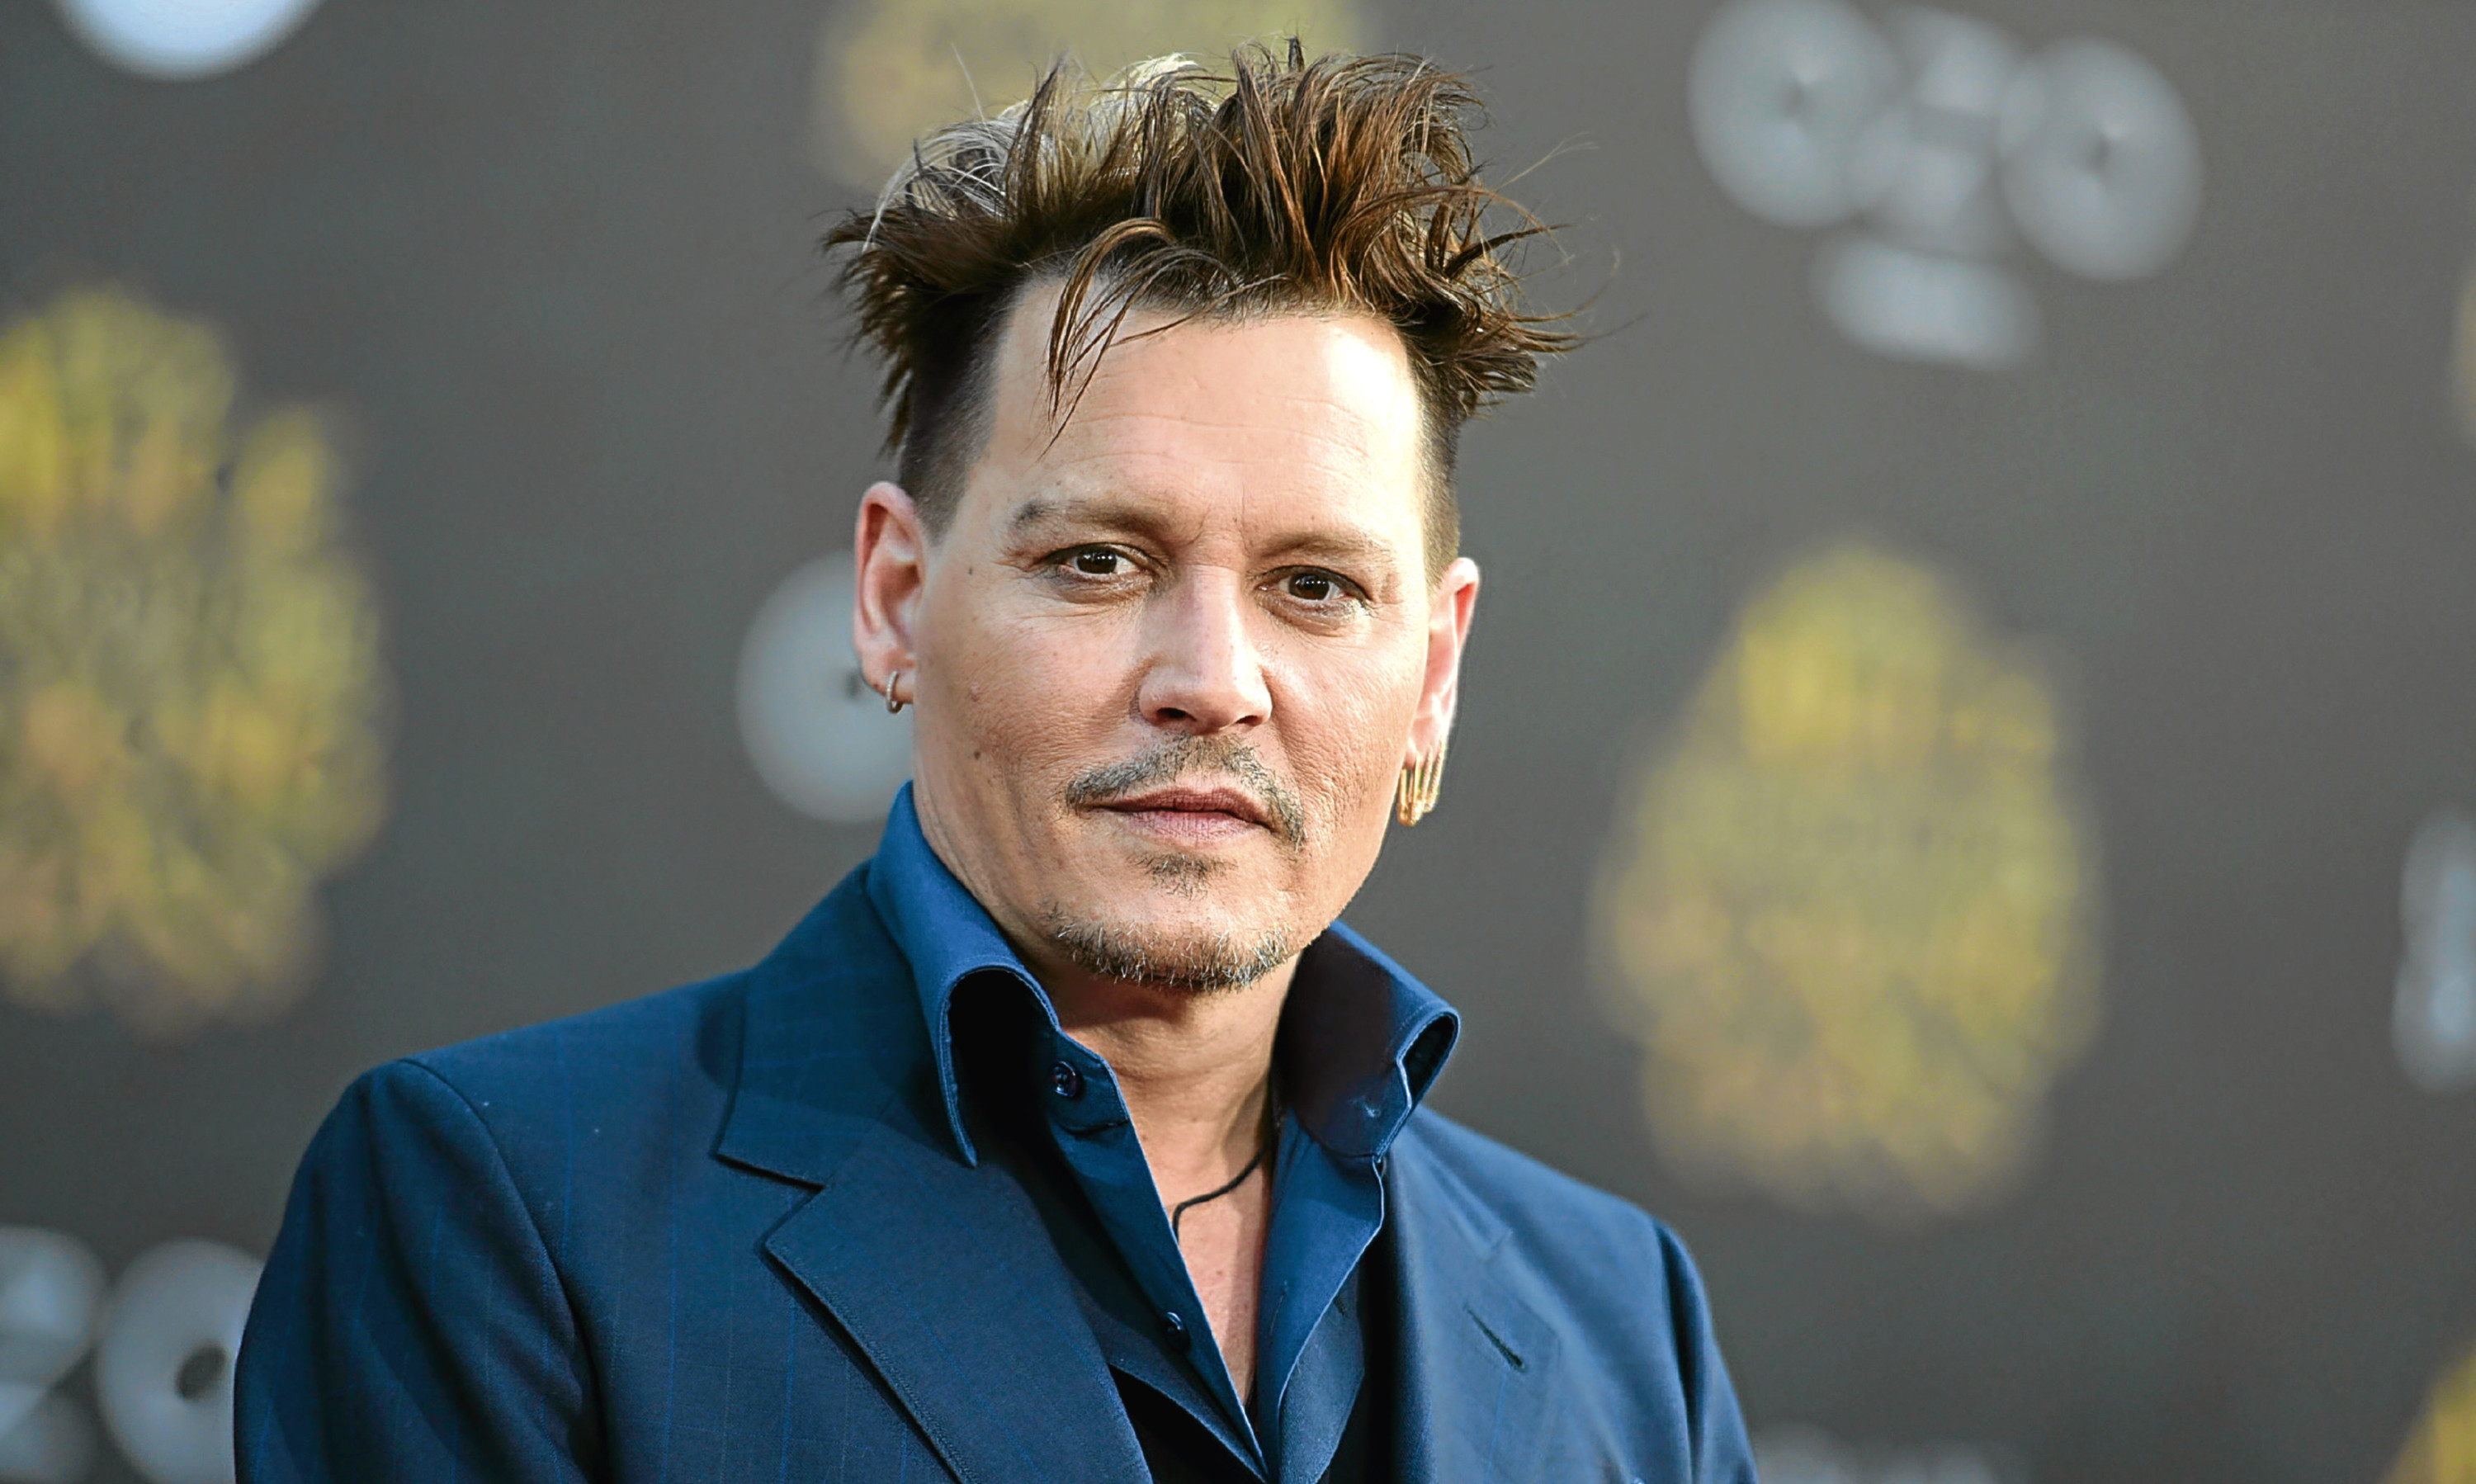 Johnny Depp's alleged wine bill has astonished Lucy.